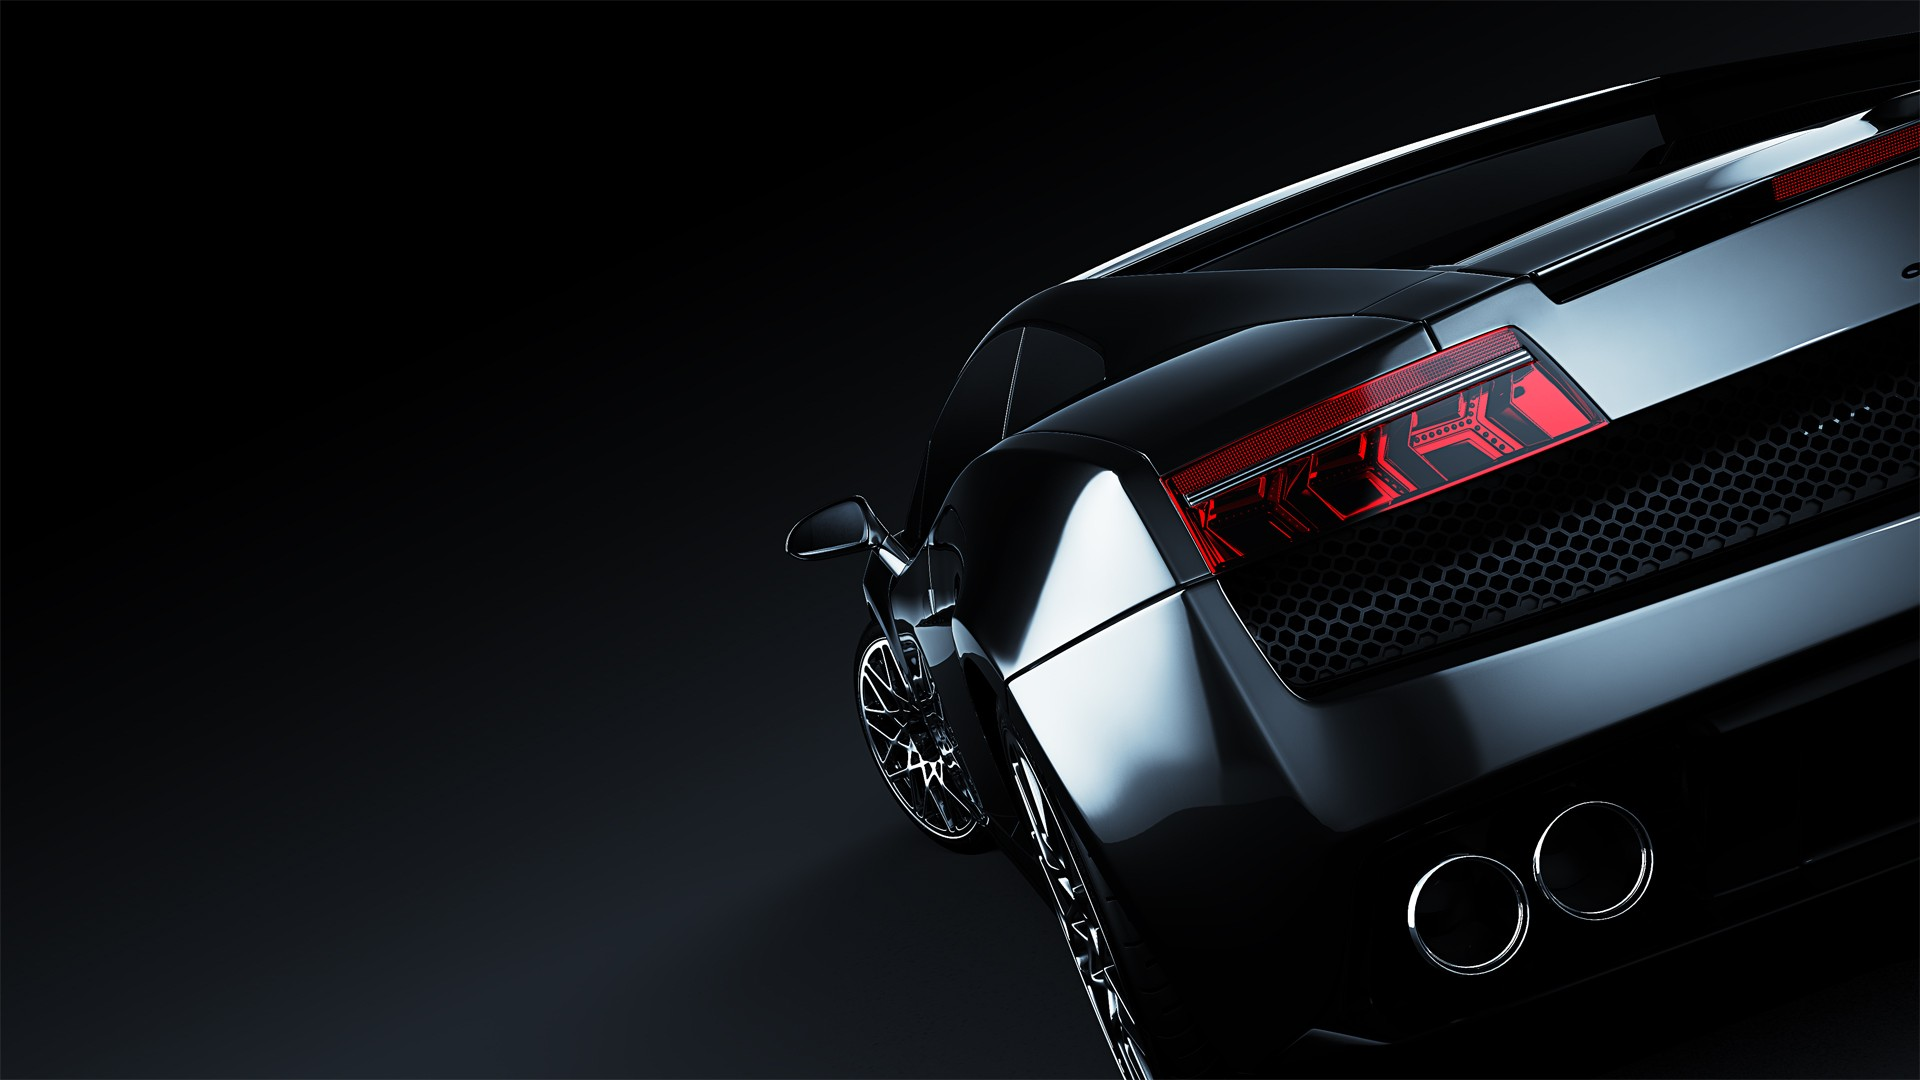 HD Wallpapers with Black background Super cars HQ backgrounds 1080P 1920x1080